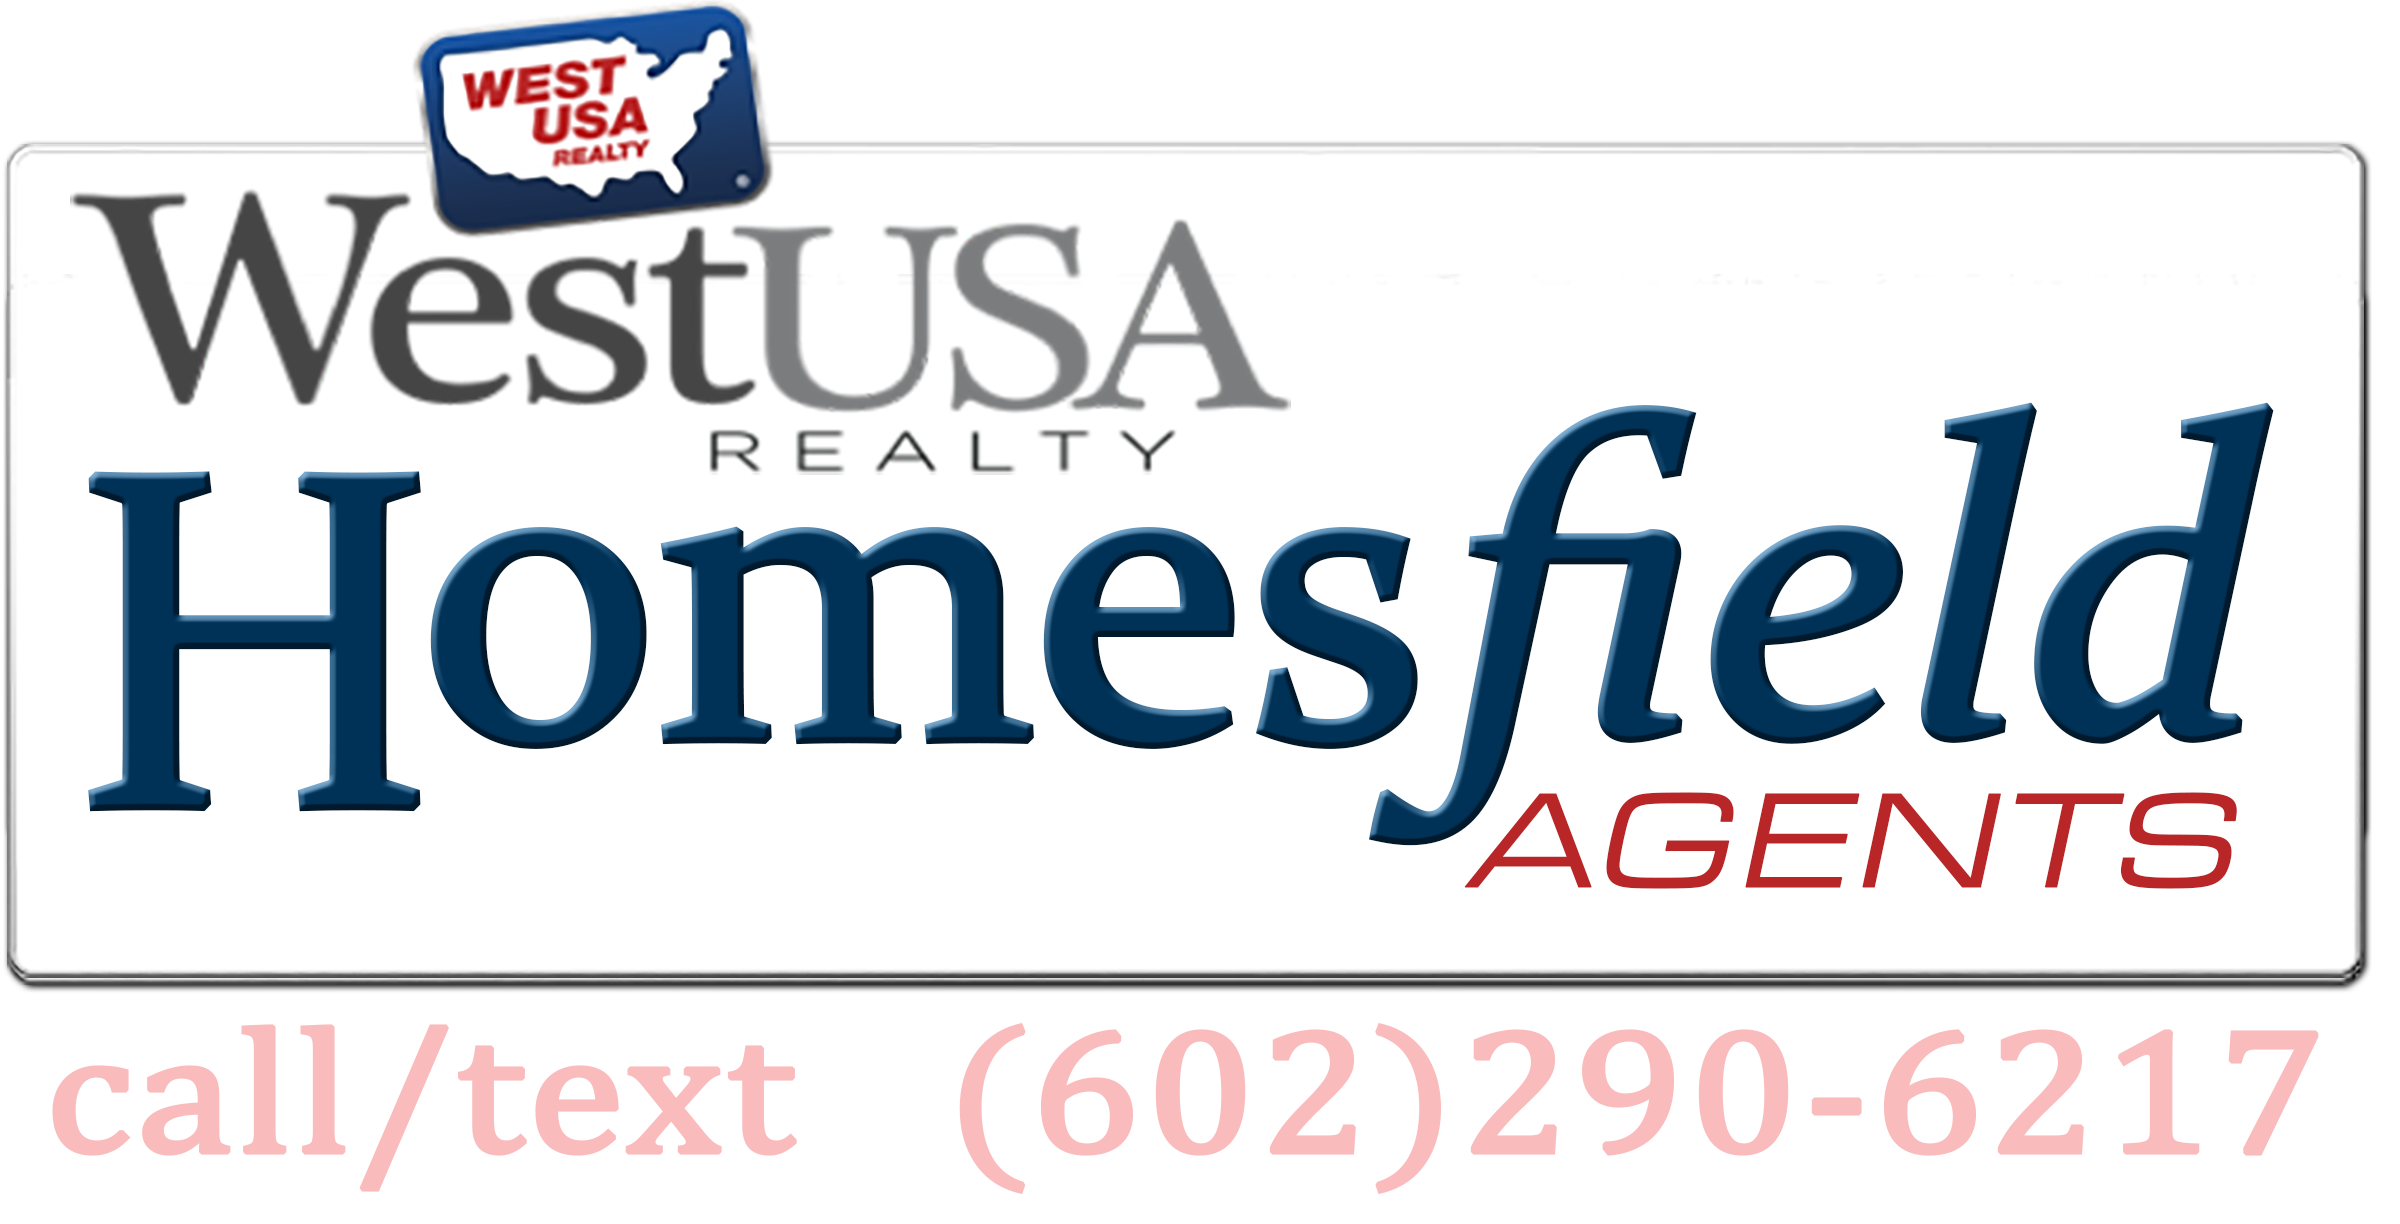 Homesfield Agents of West USA Realty Scottsdale AZ